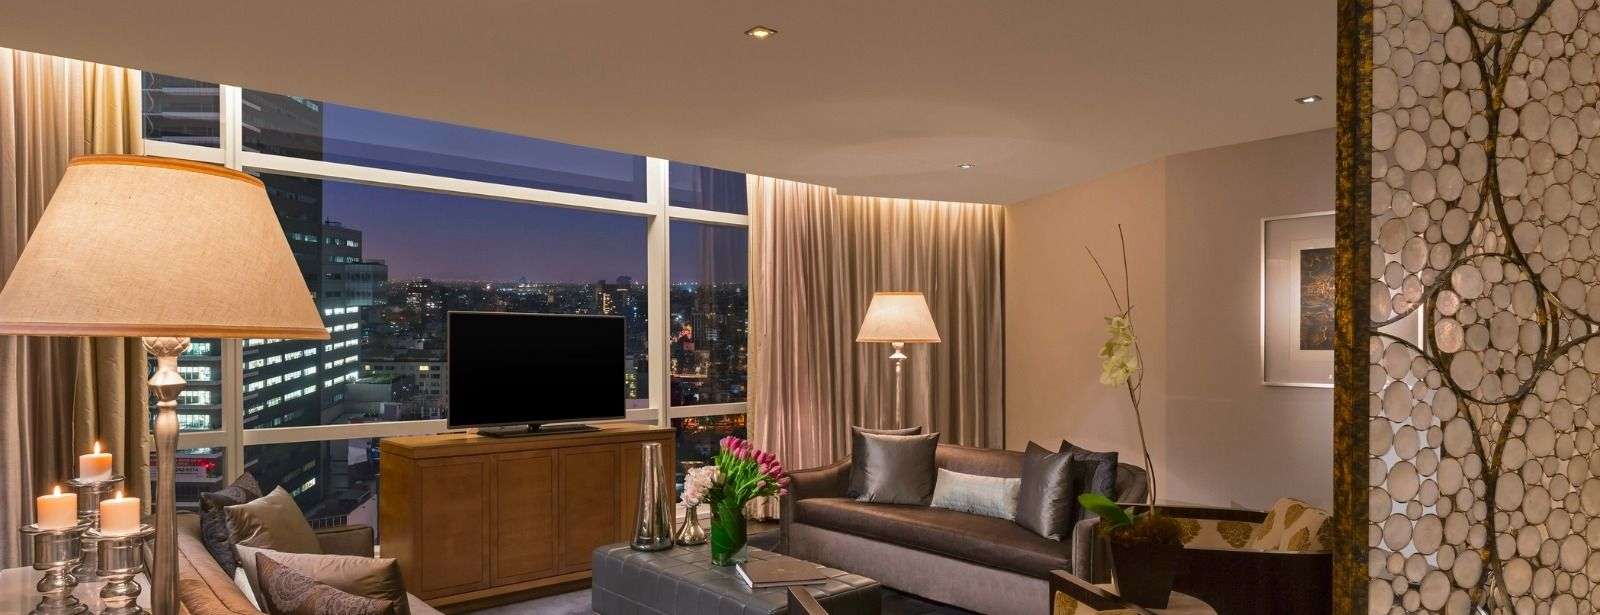 Suite Astor - St. Regis Mexico City